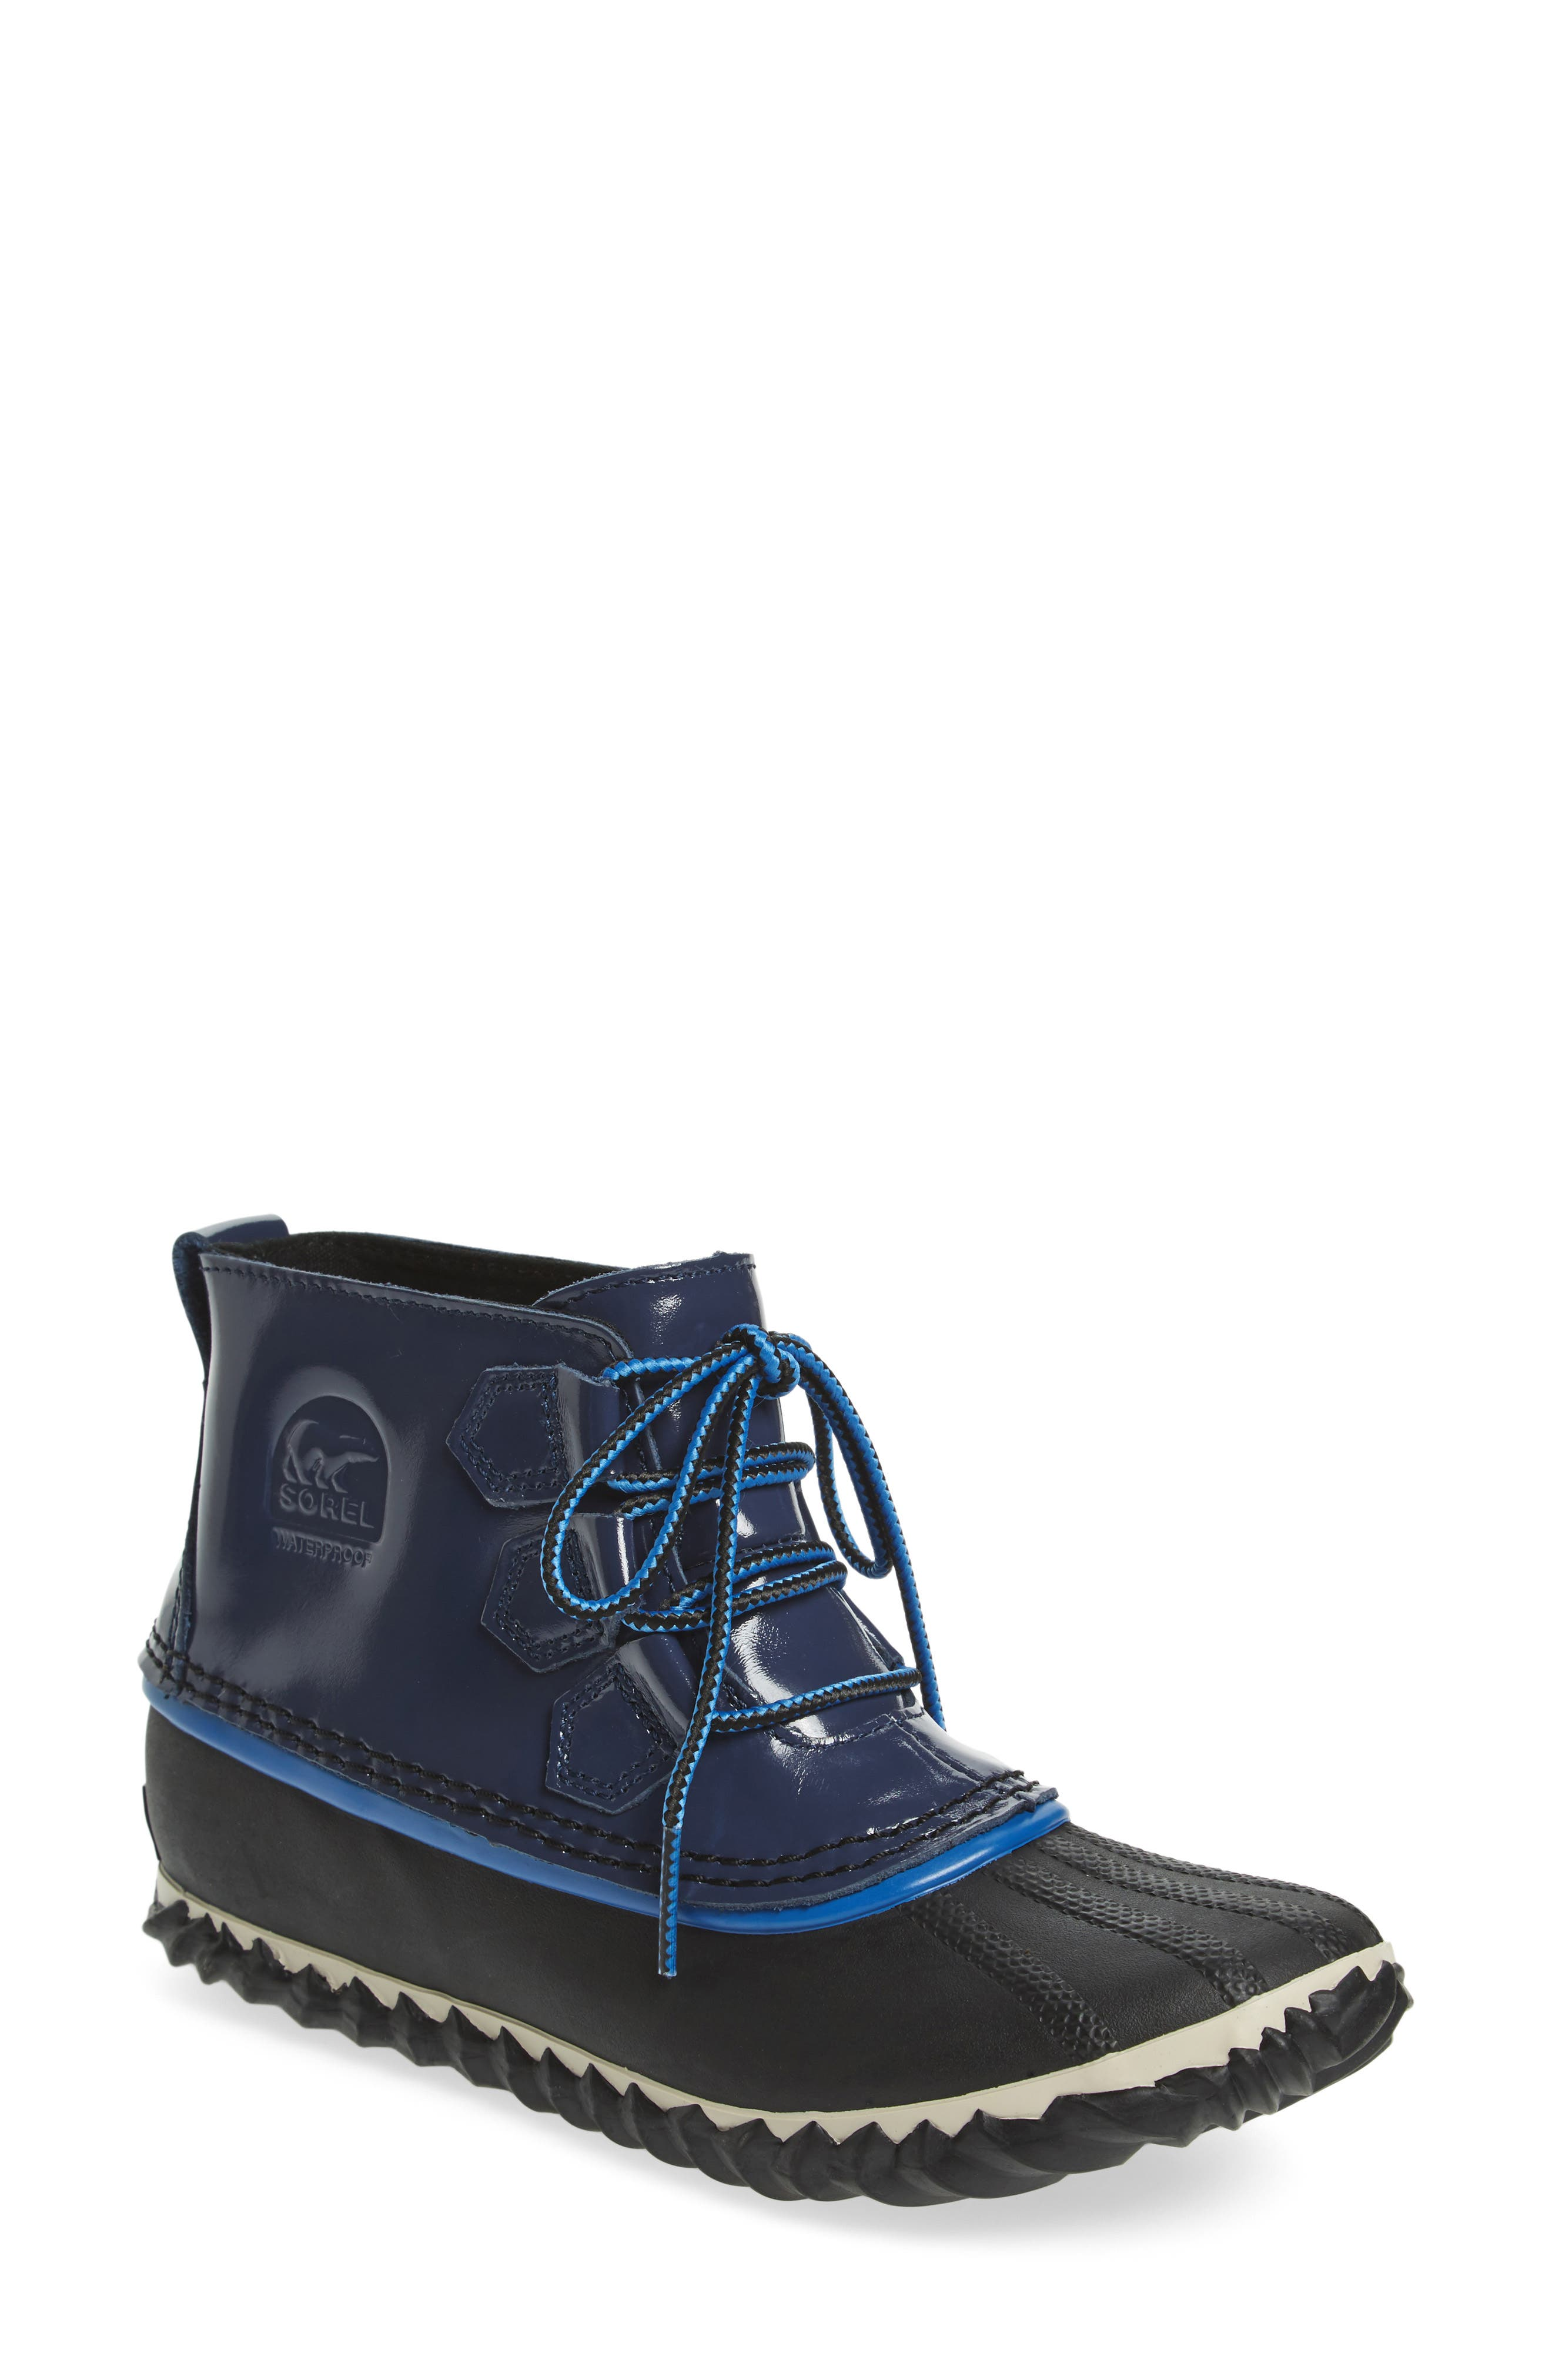 SOREL Out N About Rain Boot, Main, color, 400